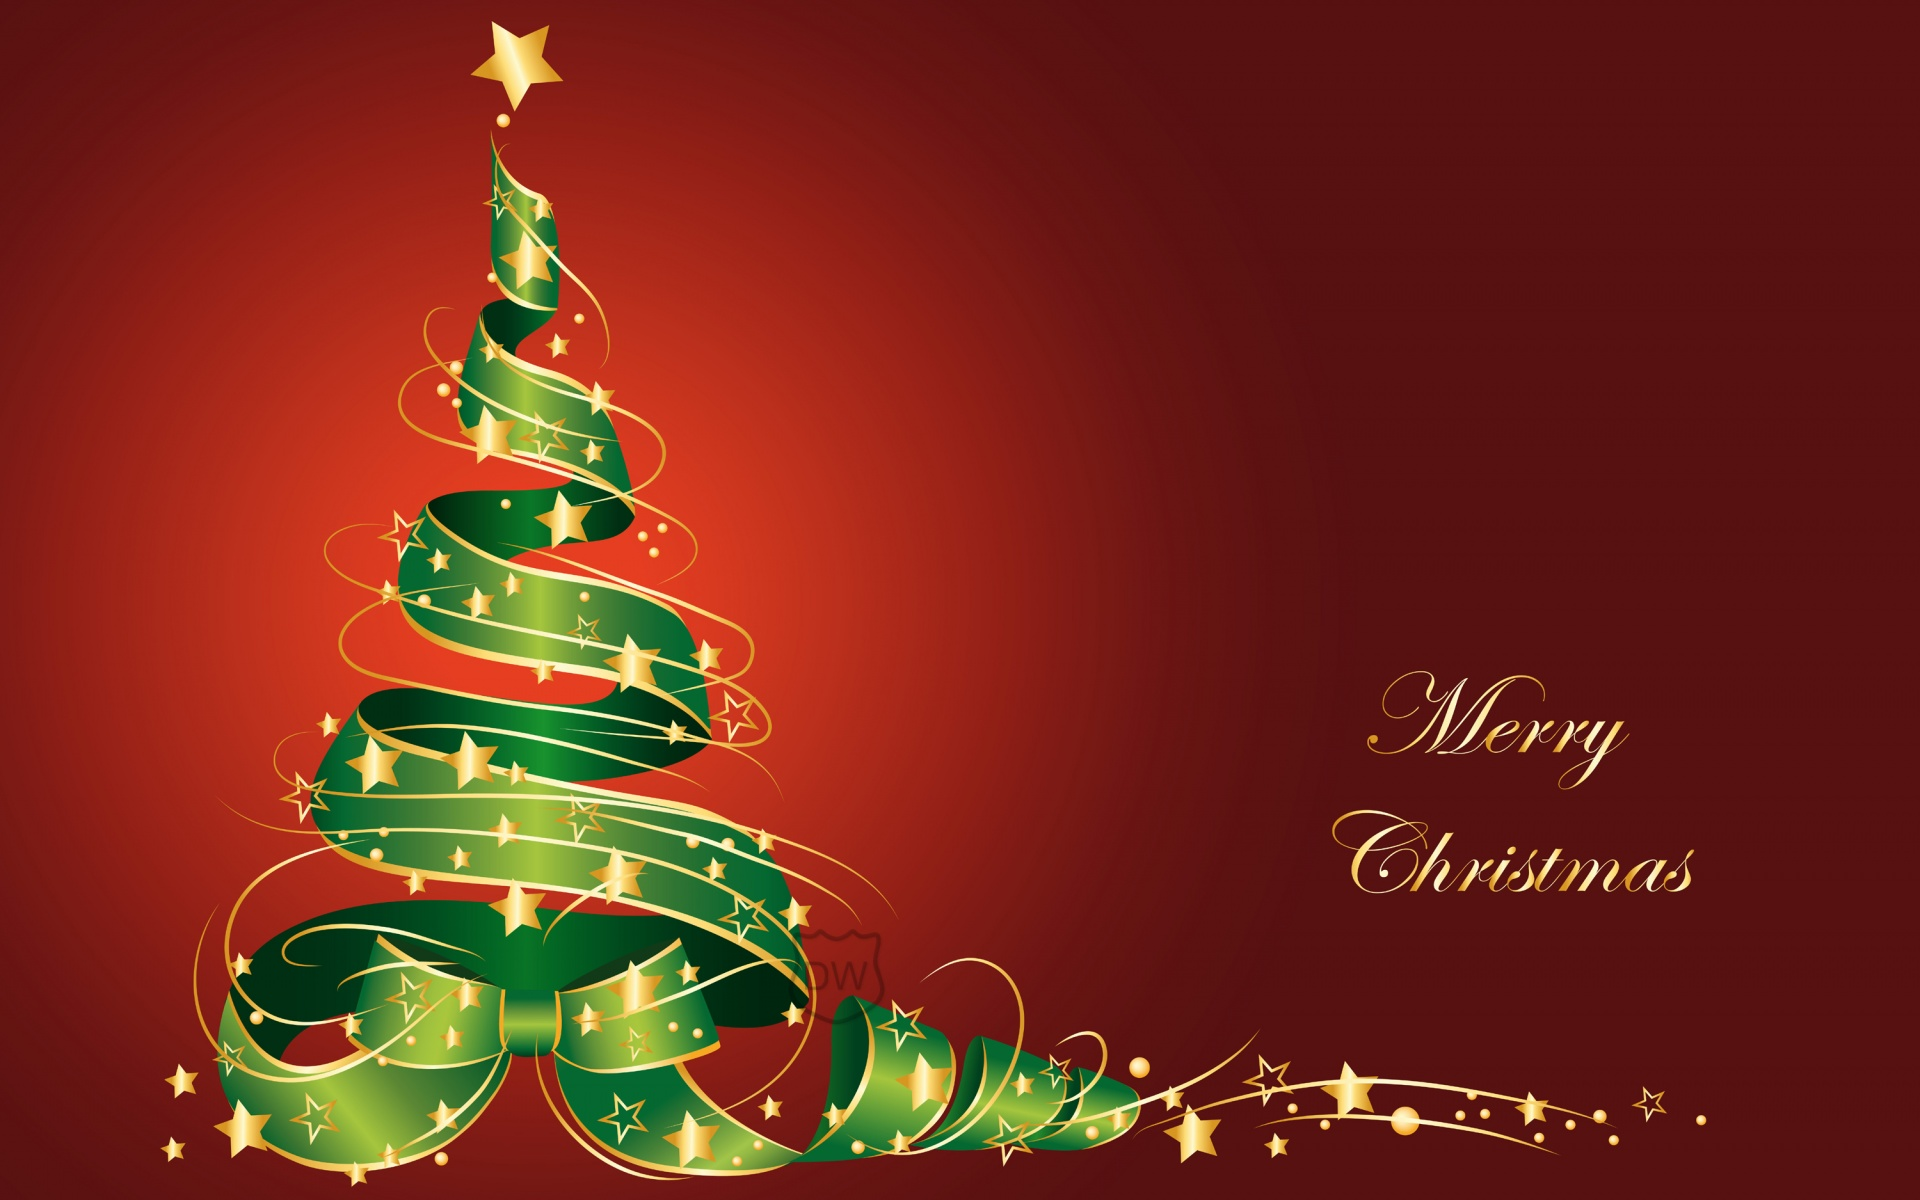 Merry Christmas Tree Download